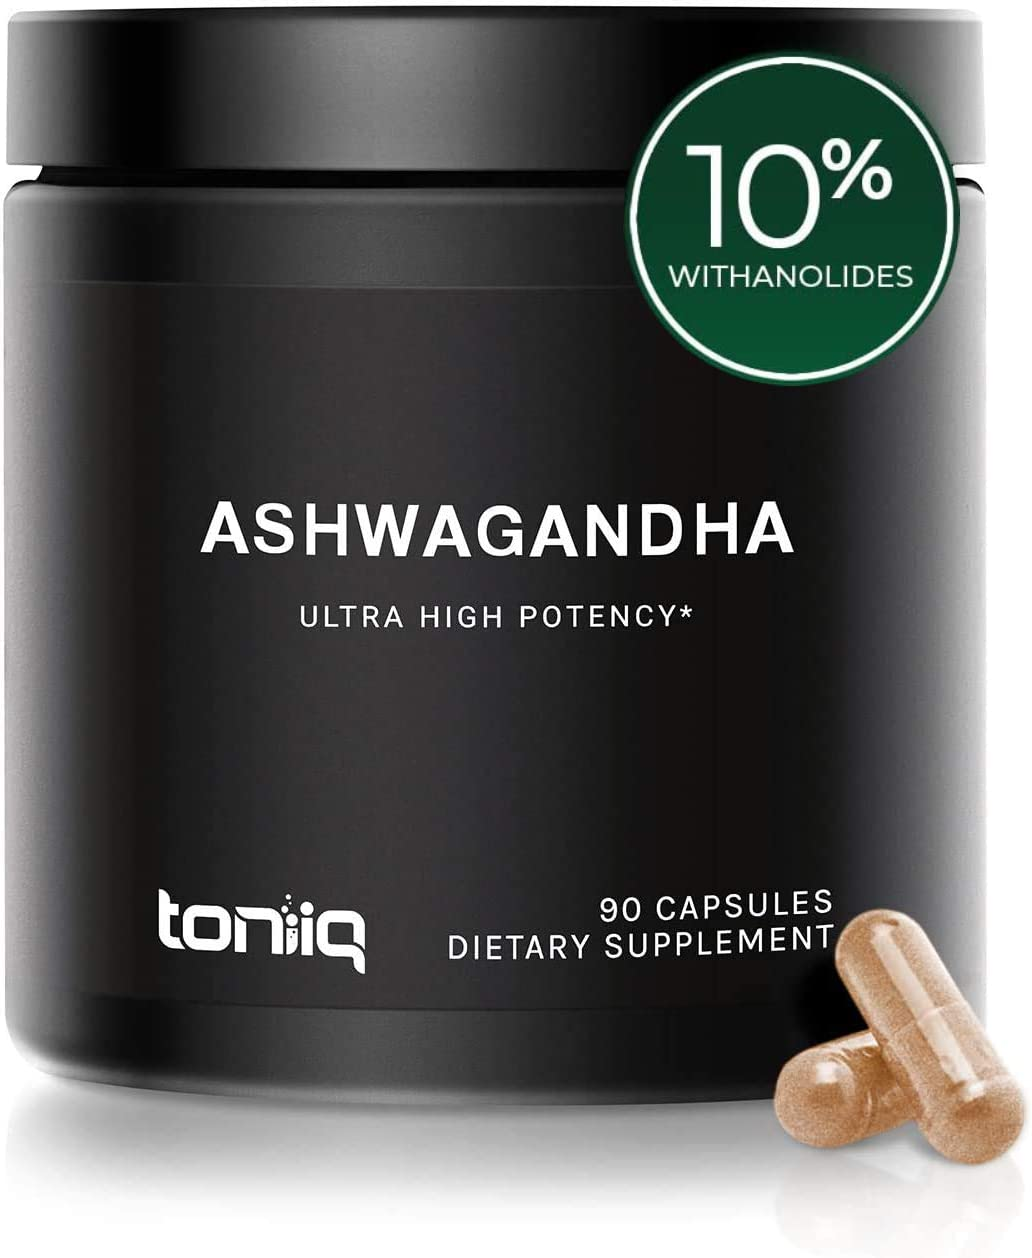 Ultra High Strength Ashwagandha Capsules – 10 Withanolides – 19,5000mg 15x Concentrated Extract – Wild Harvested in India – The Strongest Ashwagandha Anxiety Relief Support Available – 90 Caps